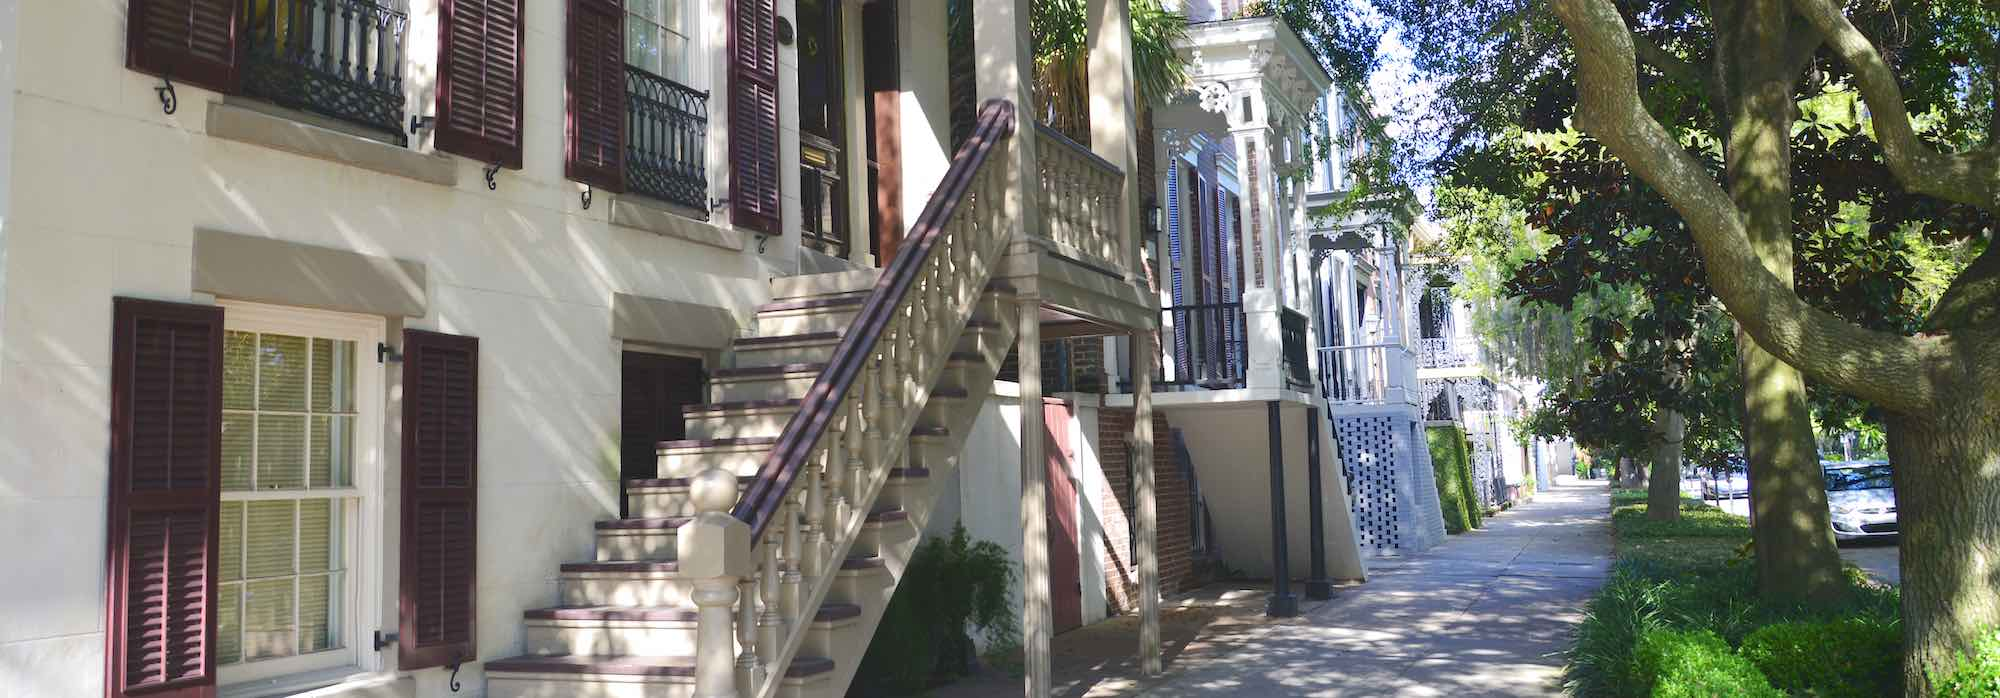 A view of historic houses along a street in Savannah's Historic District.